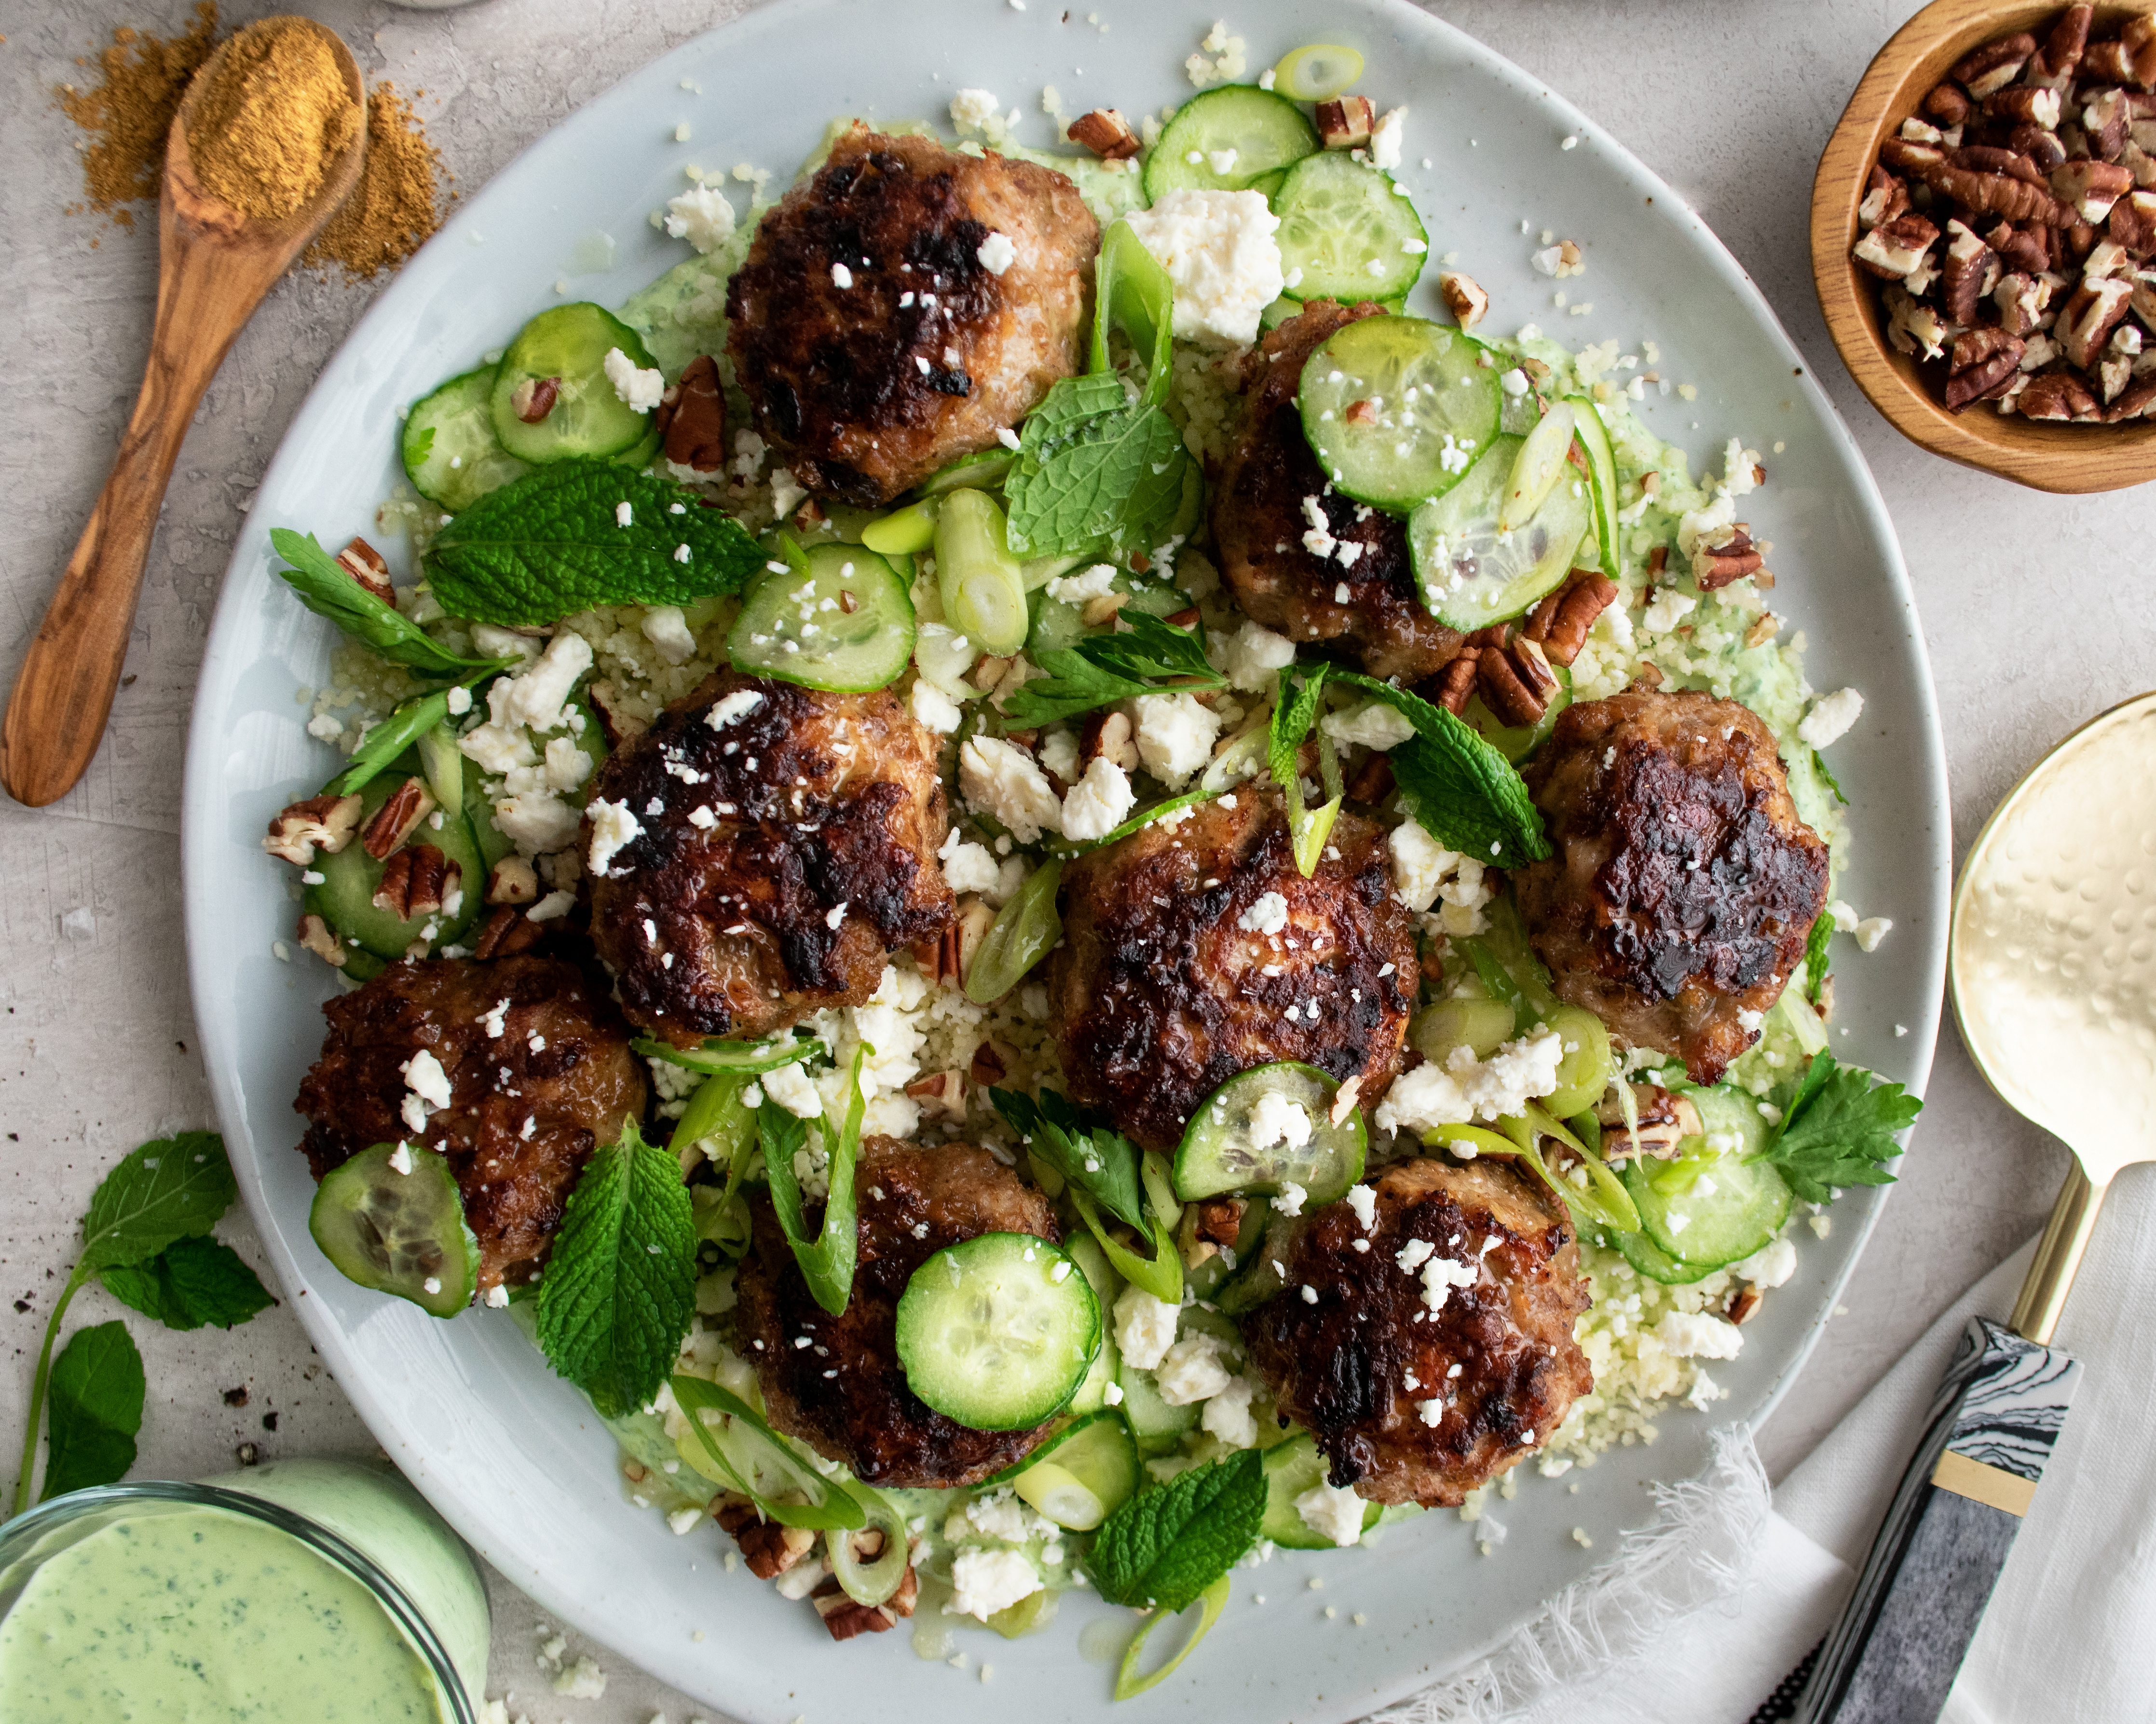 Moroccan Chicken Meatballs With Parsley Sauce The Original Dish